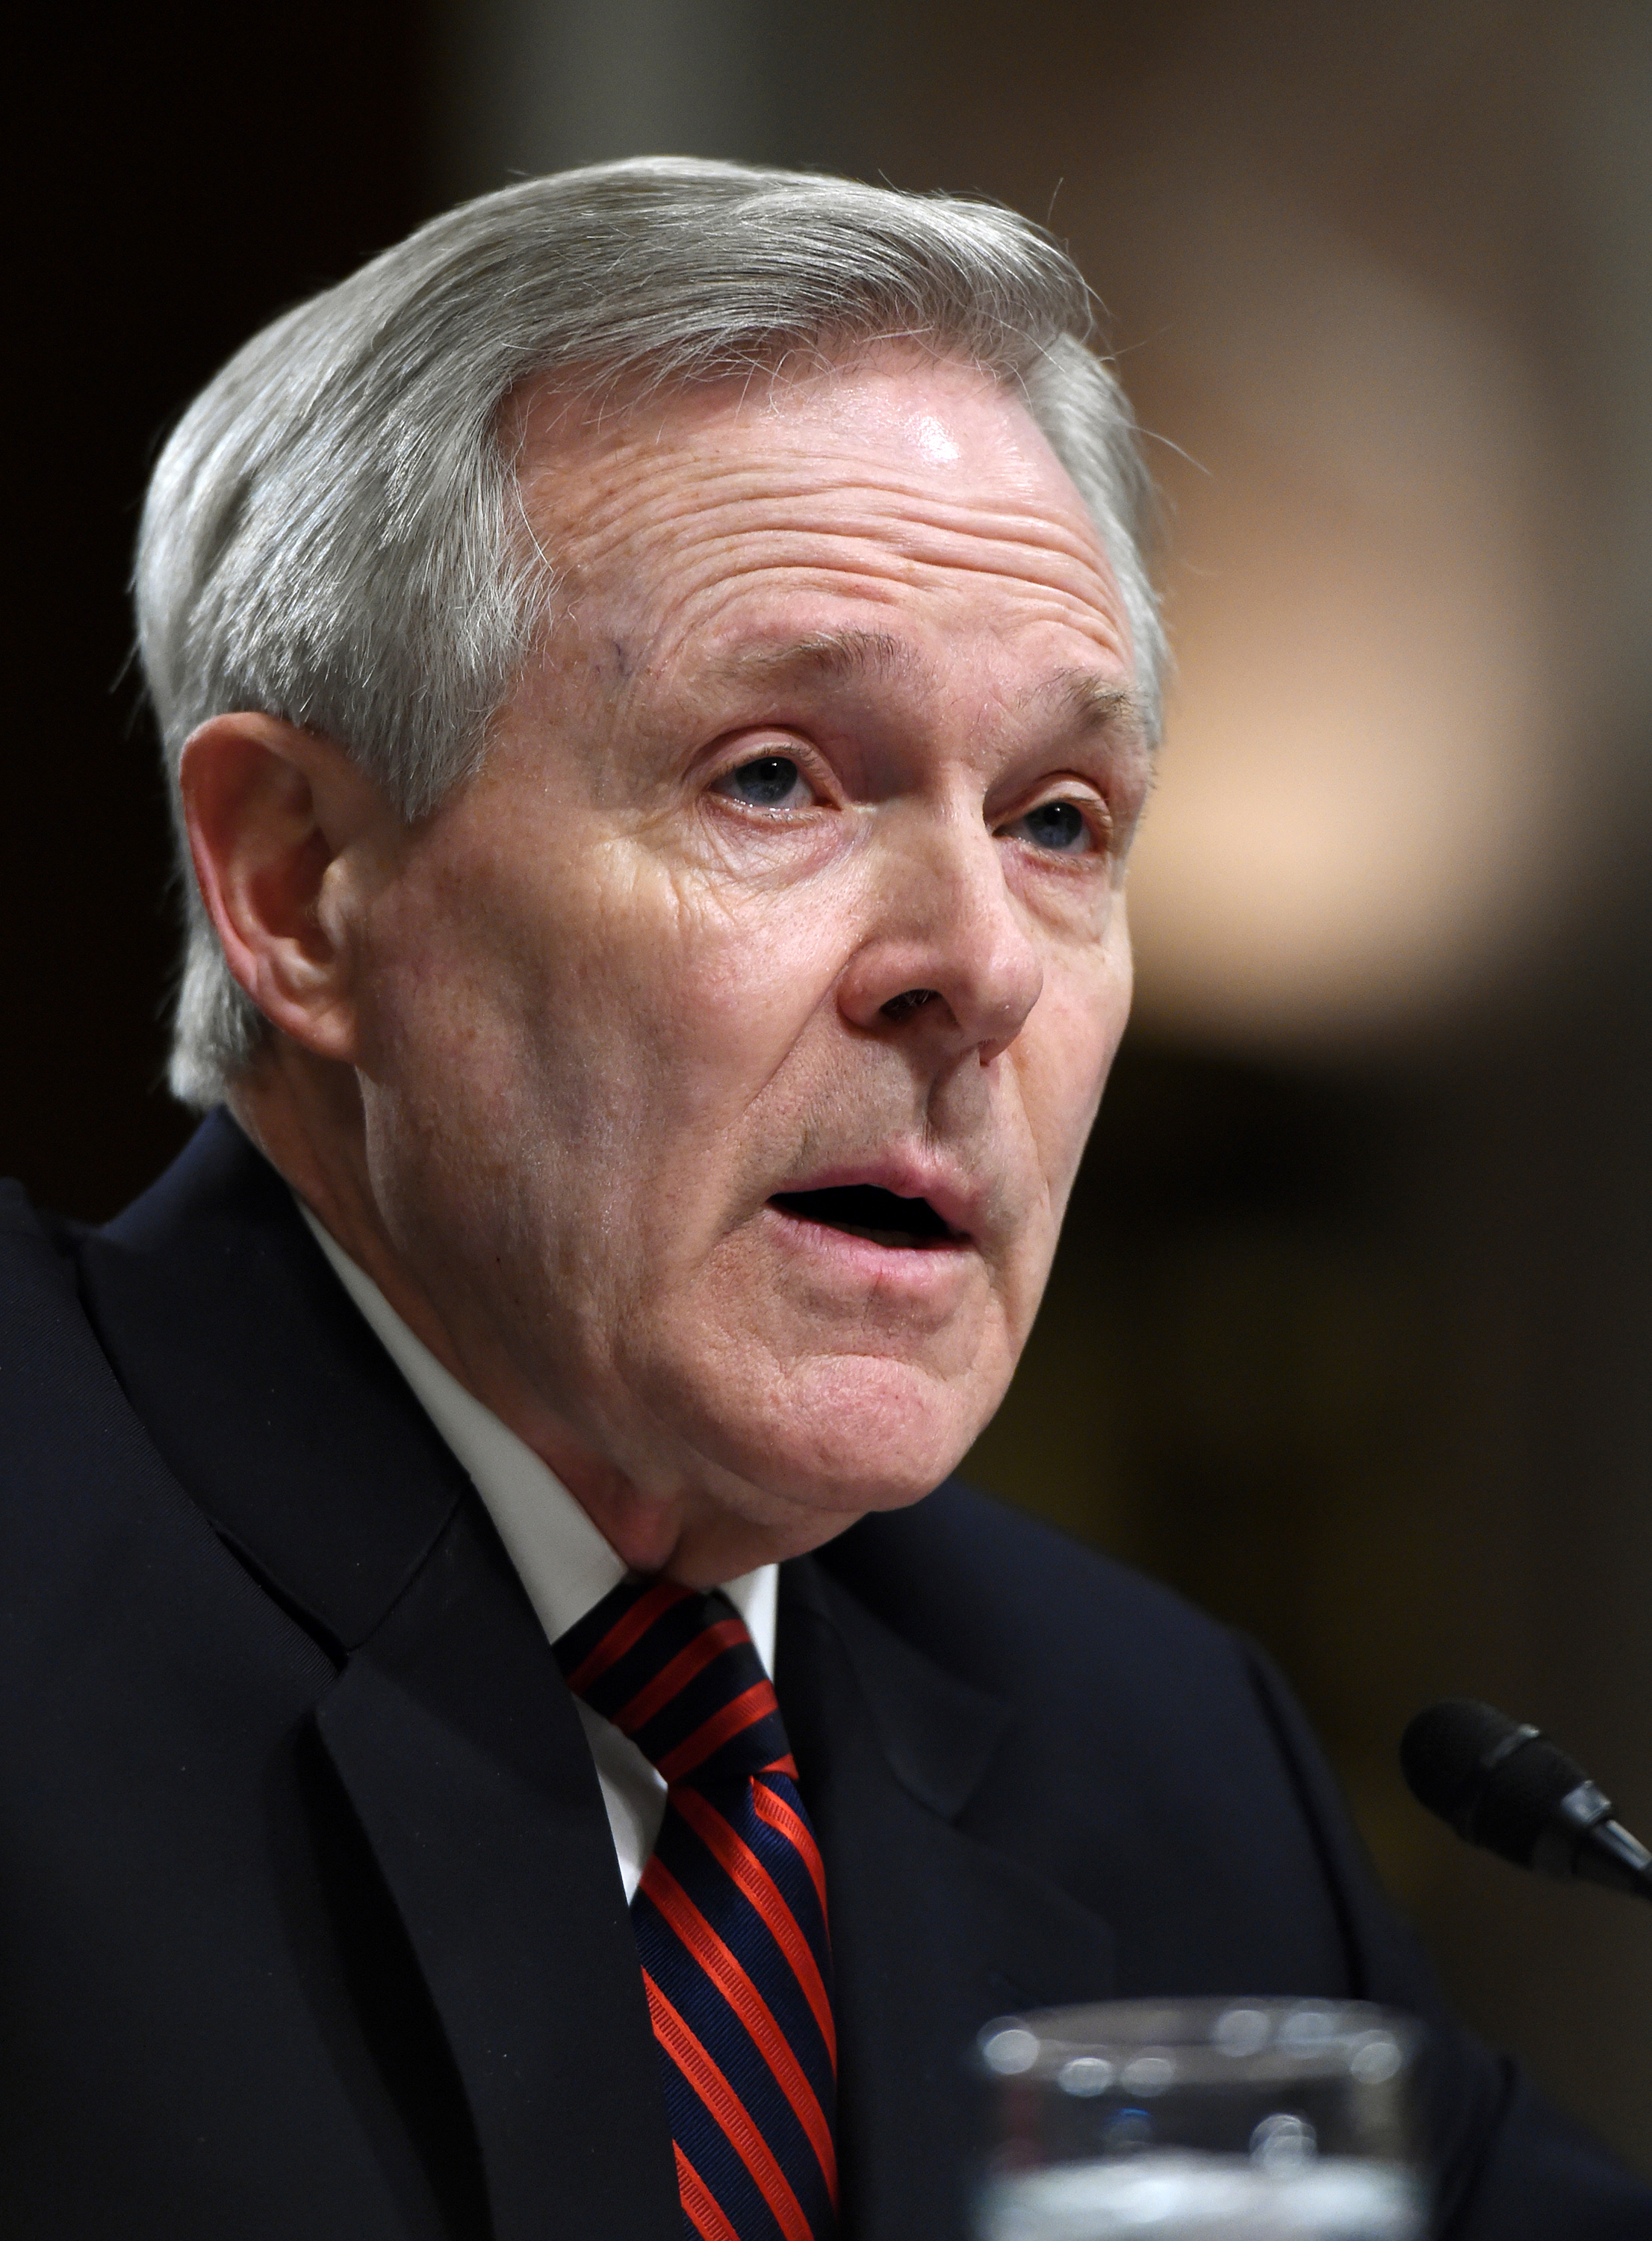 Navy Secretary Ray Mabus testifies on Capitol Hill in Washington on March 10, 2015.